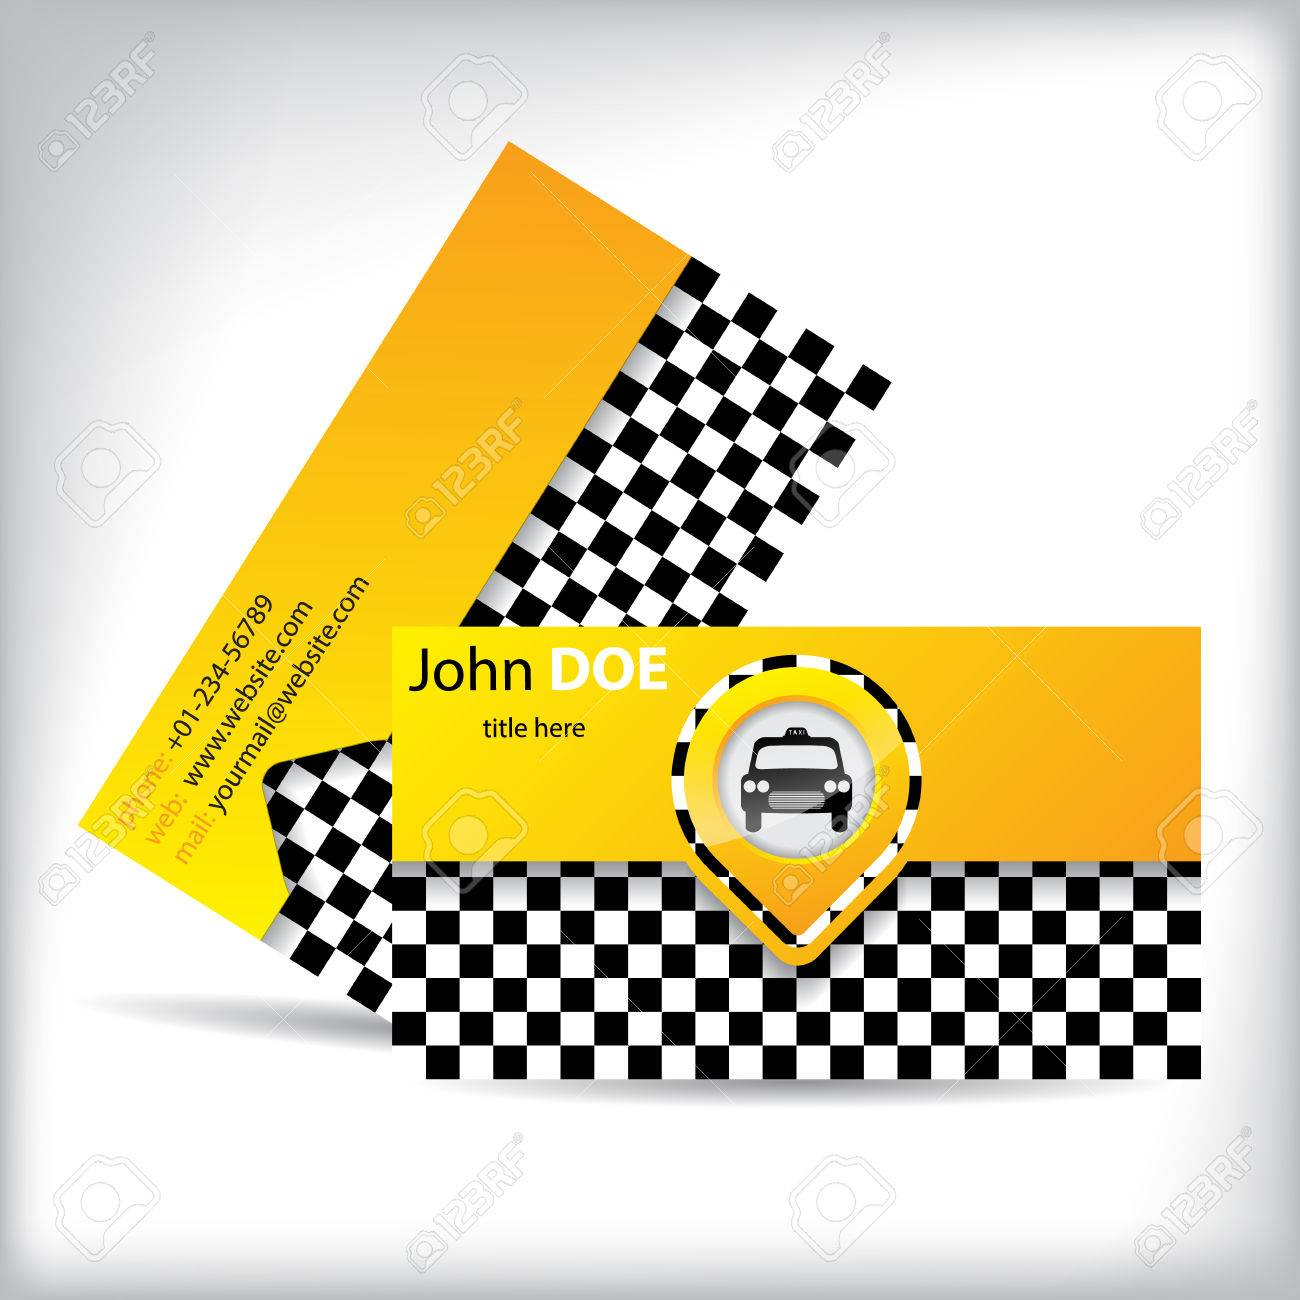 Business Card Design With Car Symbol For Taxi Companies And Drivers ...